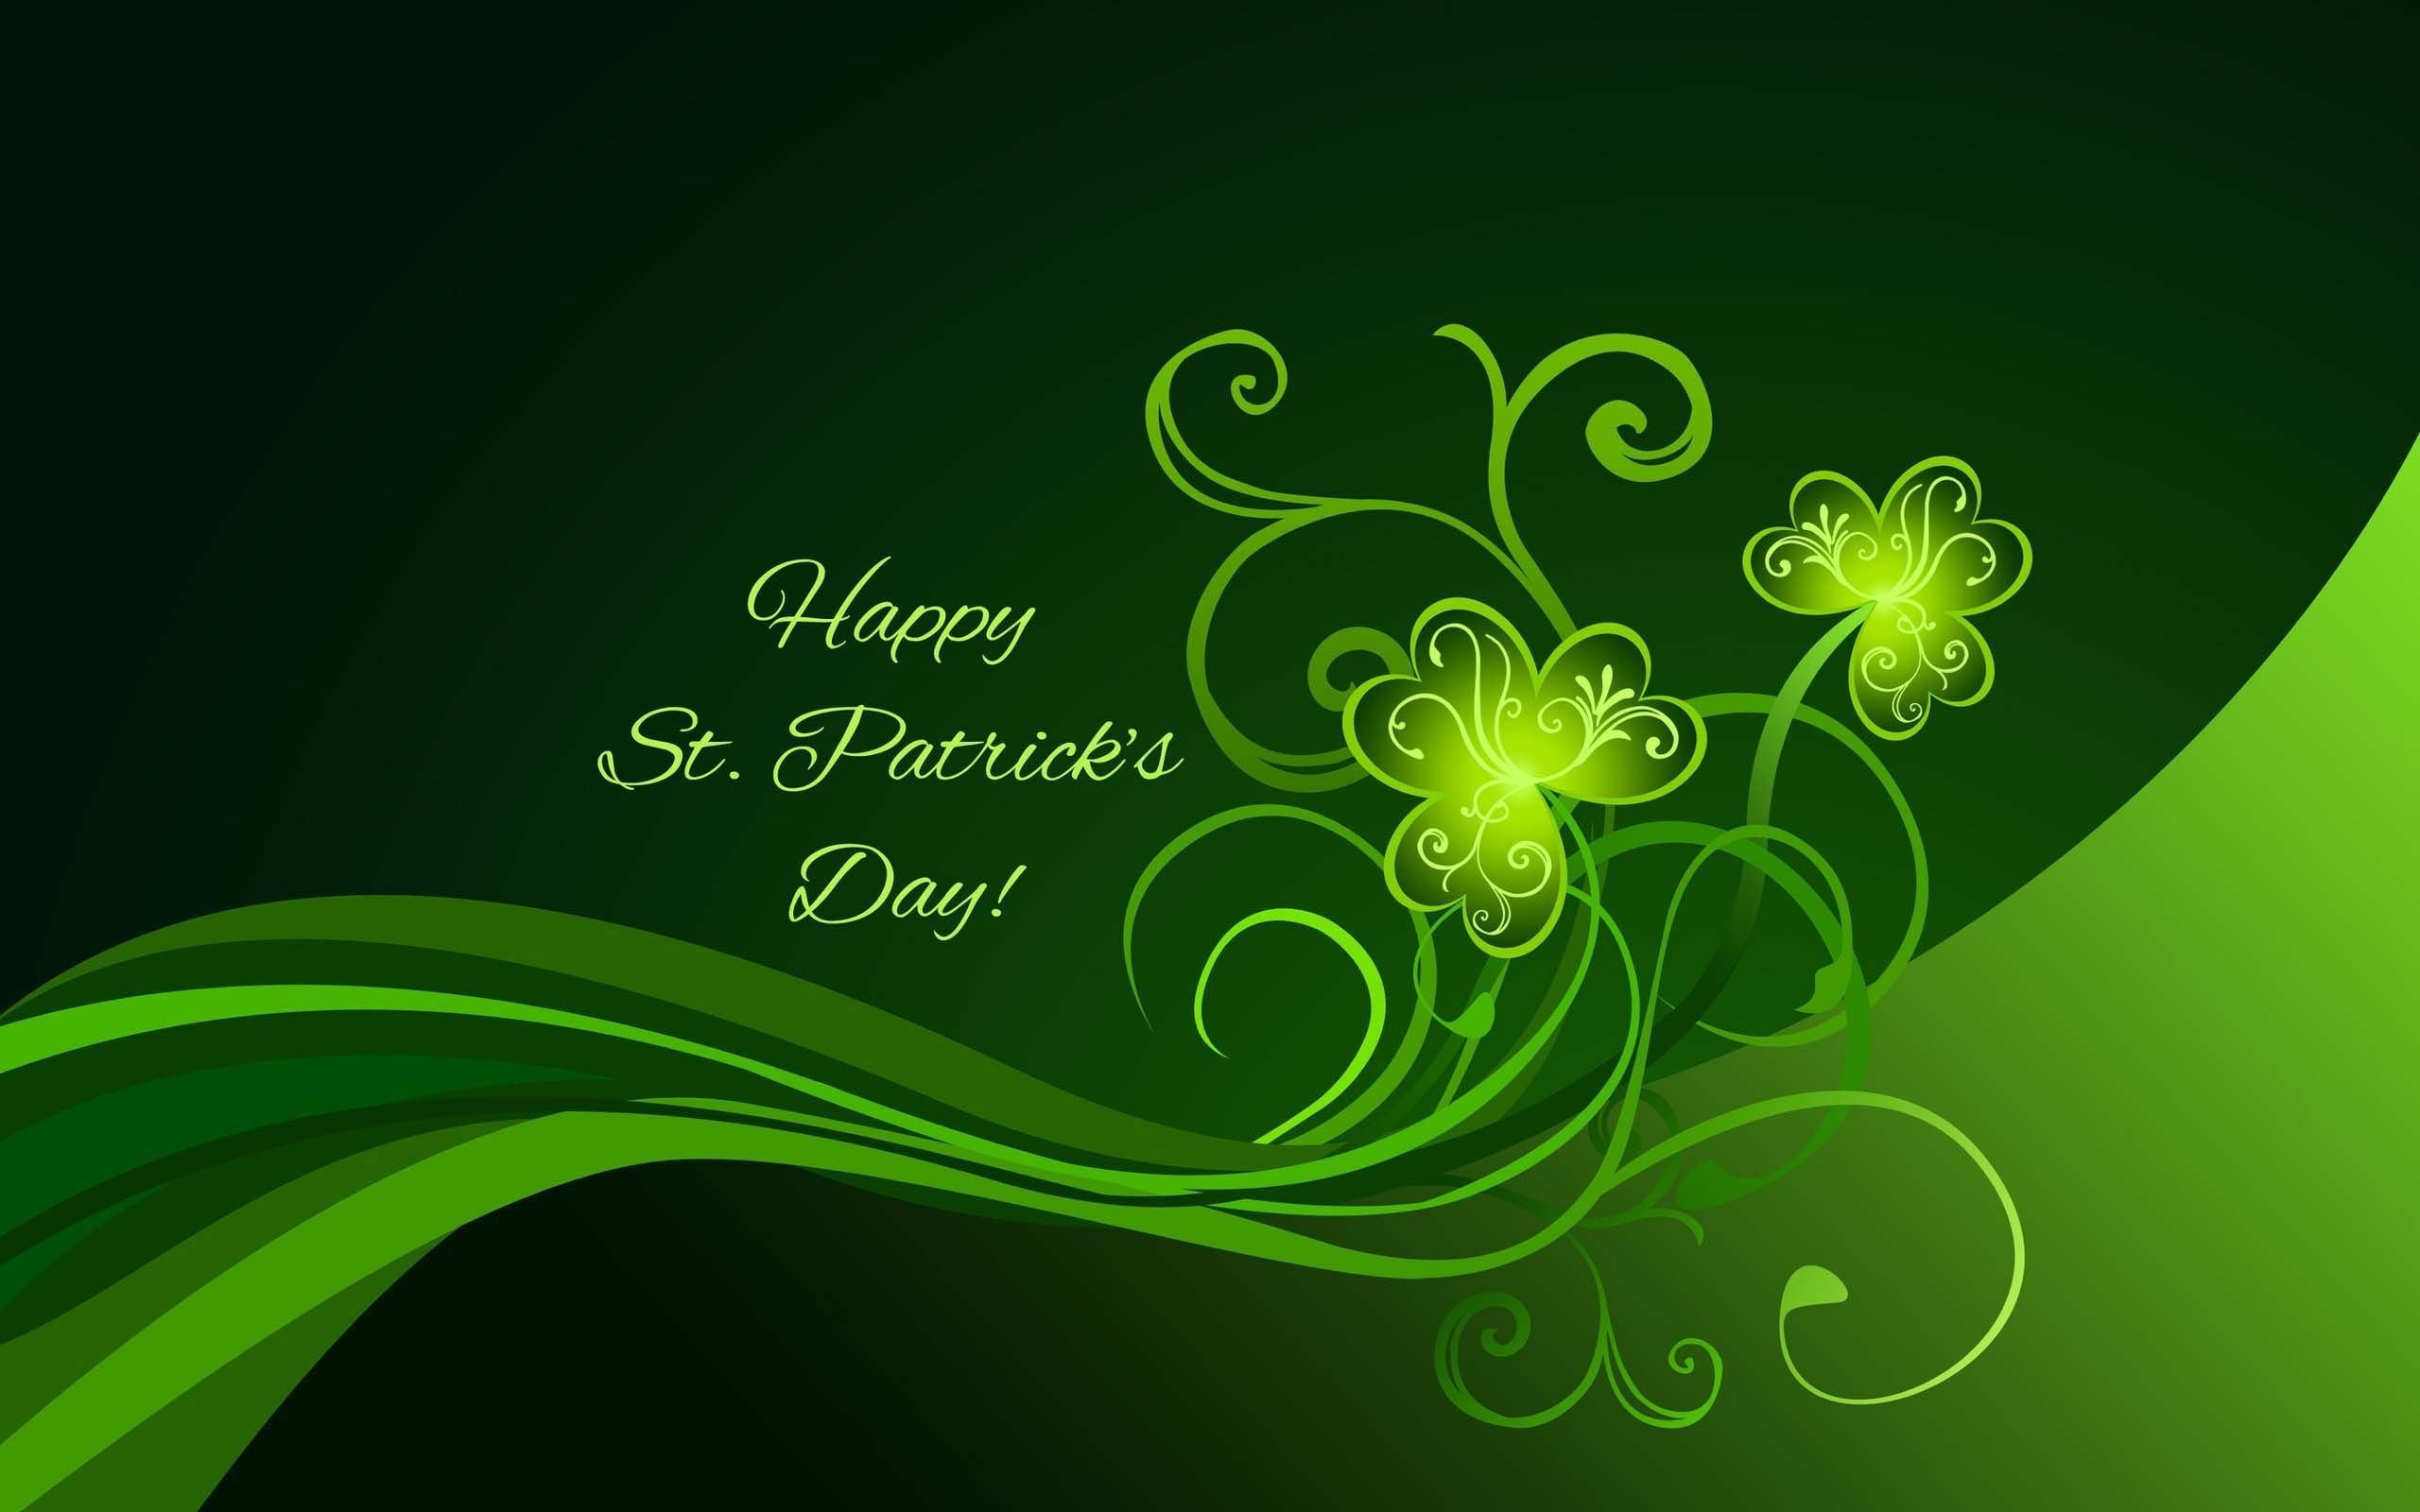 10 Best St. Patricks Day Backgrounds FULL HD 1080p For PC ...